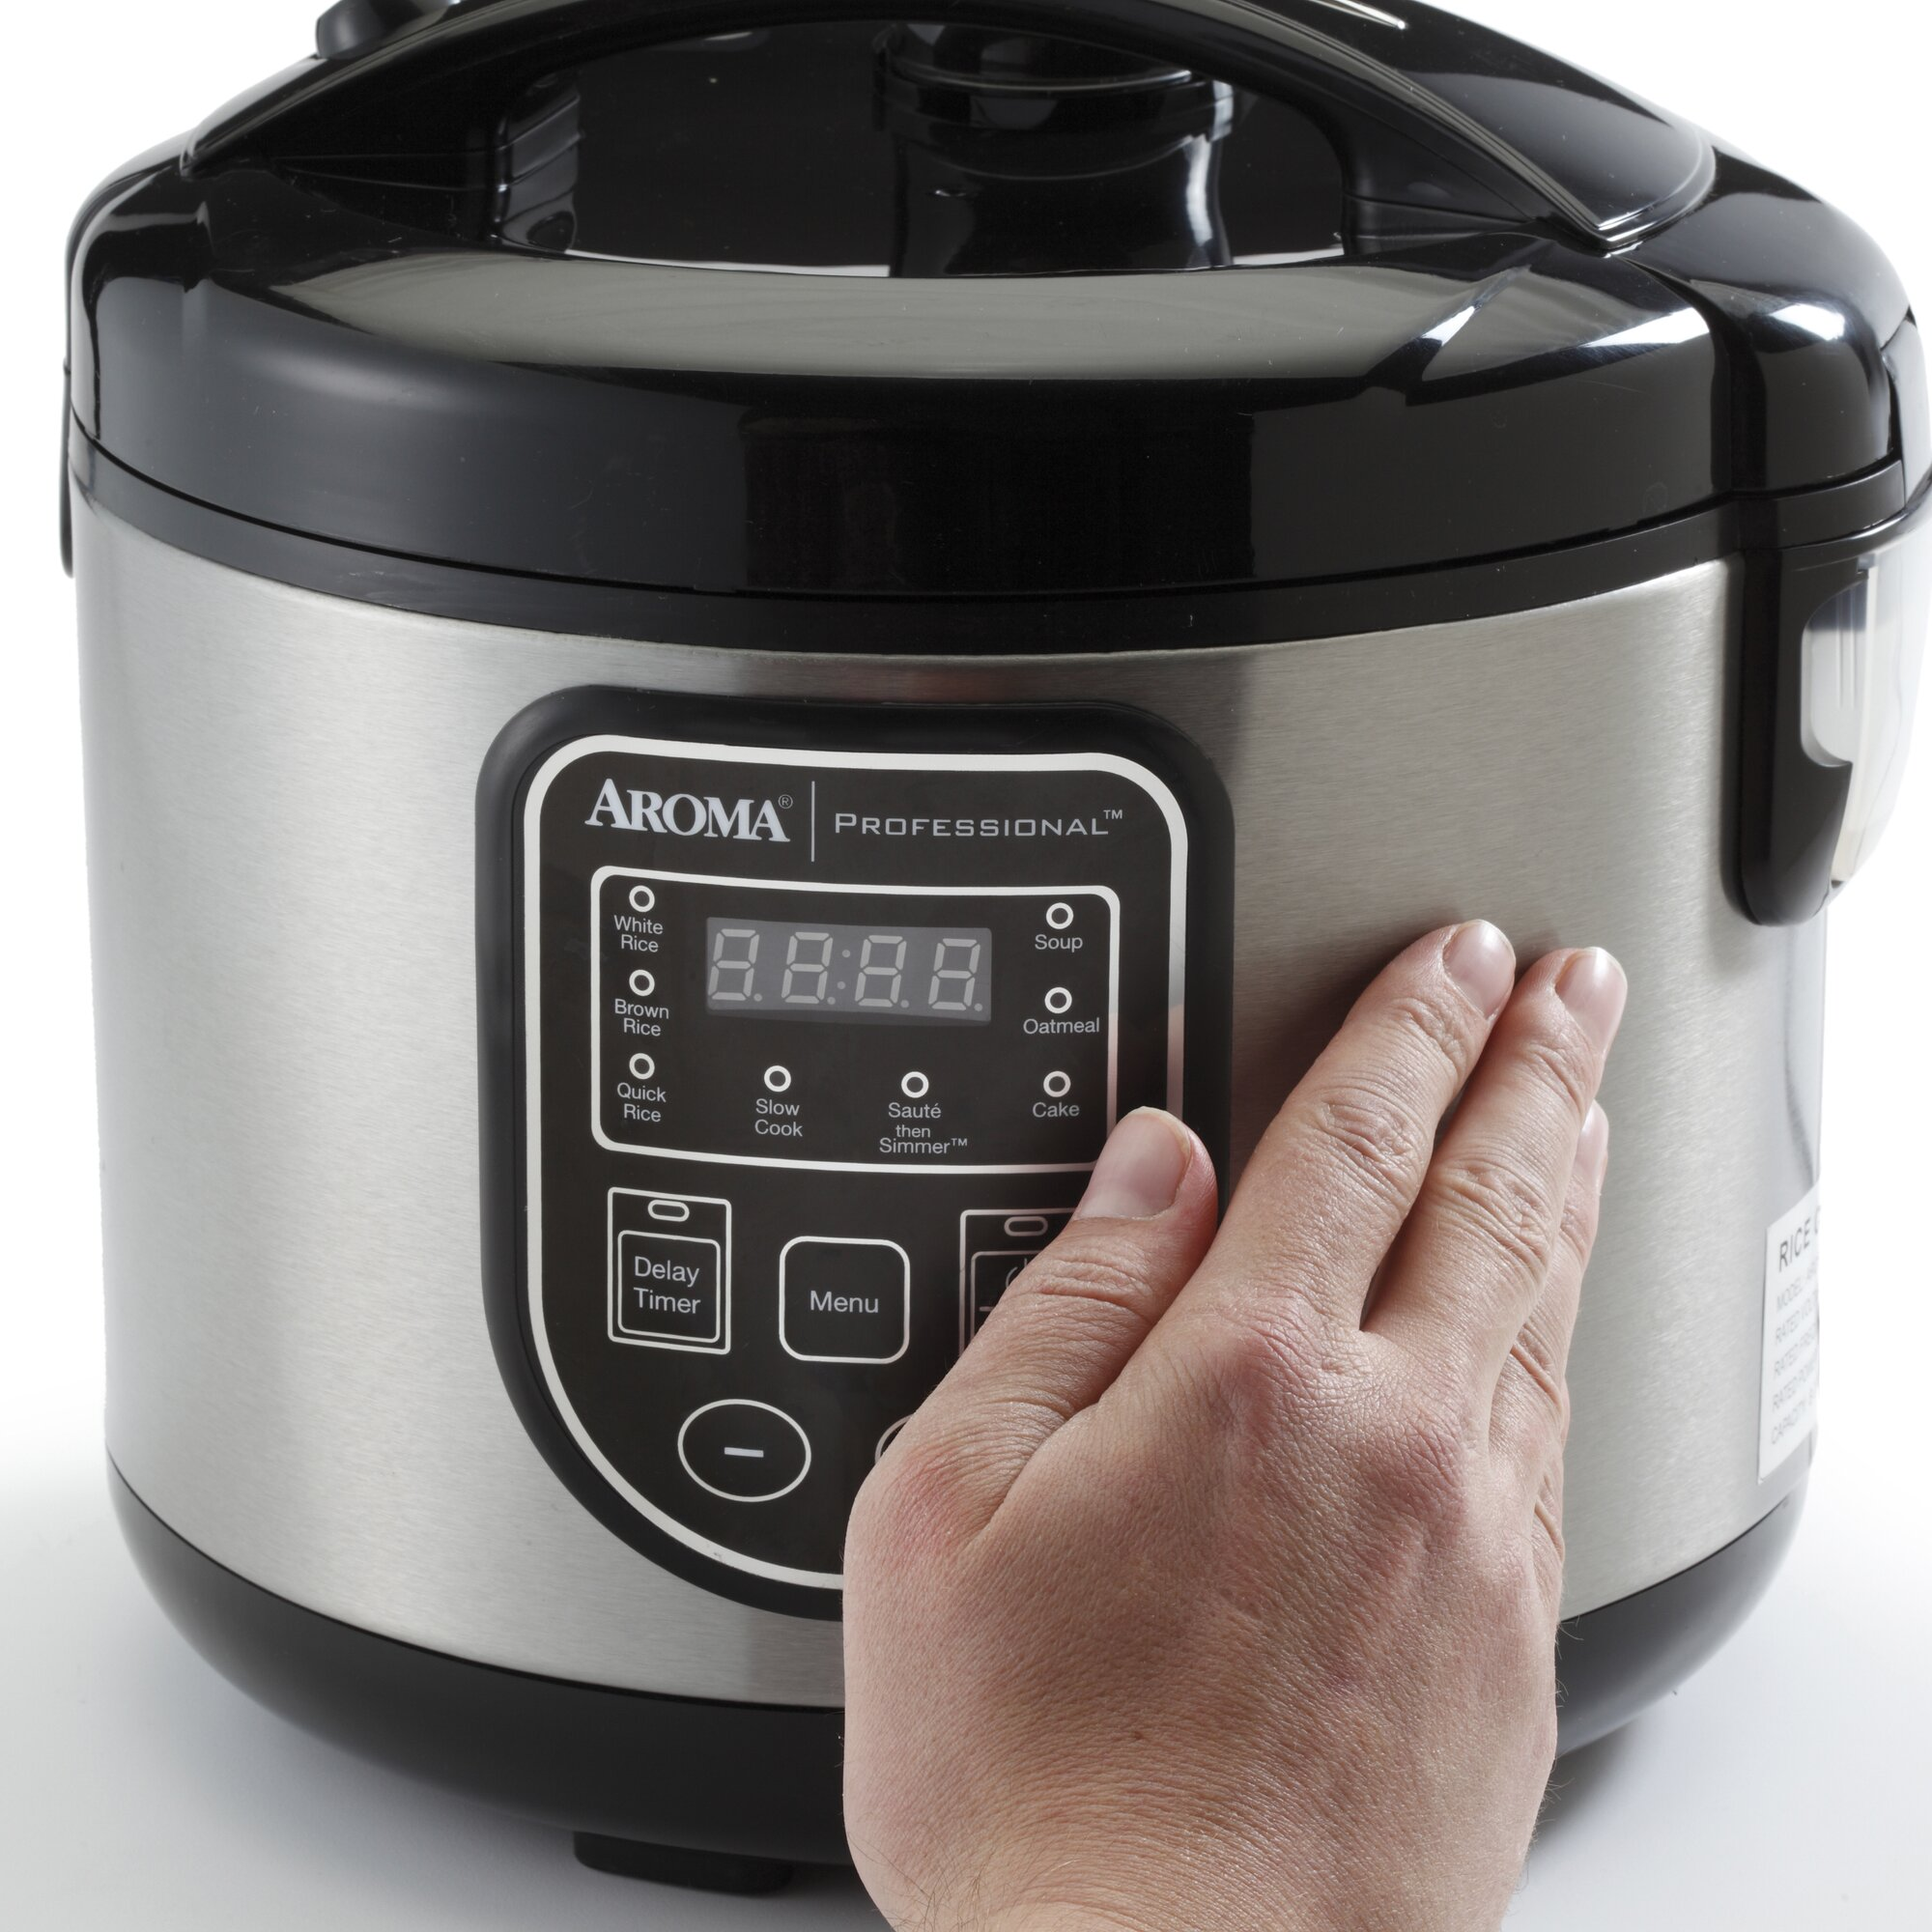 Aroma Digital Rice Cooker Aroma 16-Cup Professional Digital Rice Cooker/Slow Cooker ...